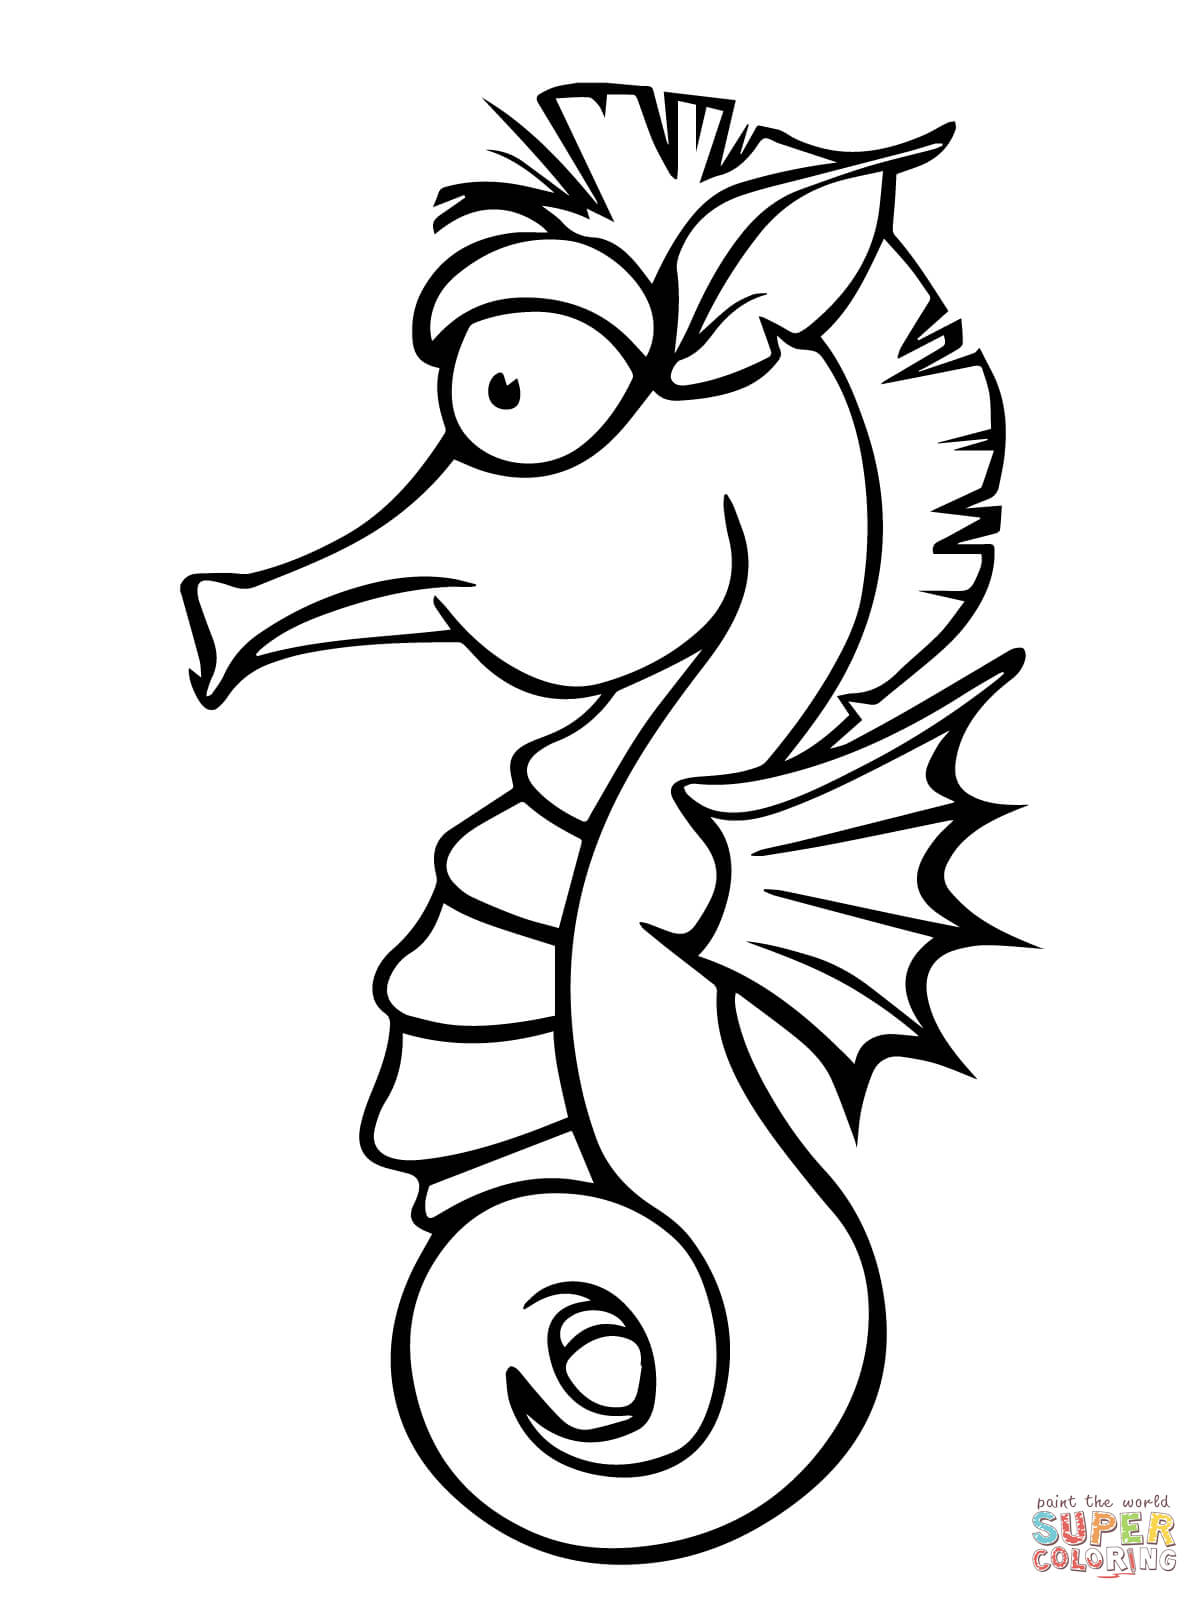 Realistic Seahorse Drawing At Getdrawings Com Free For Personal